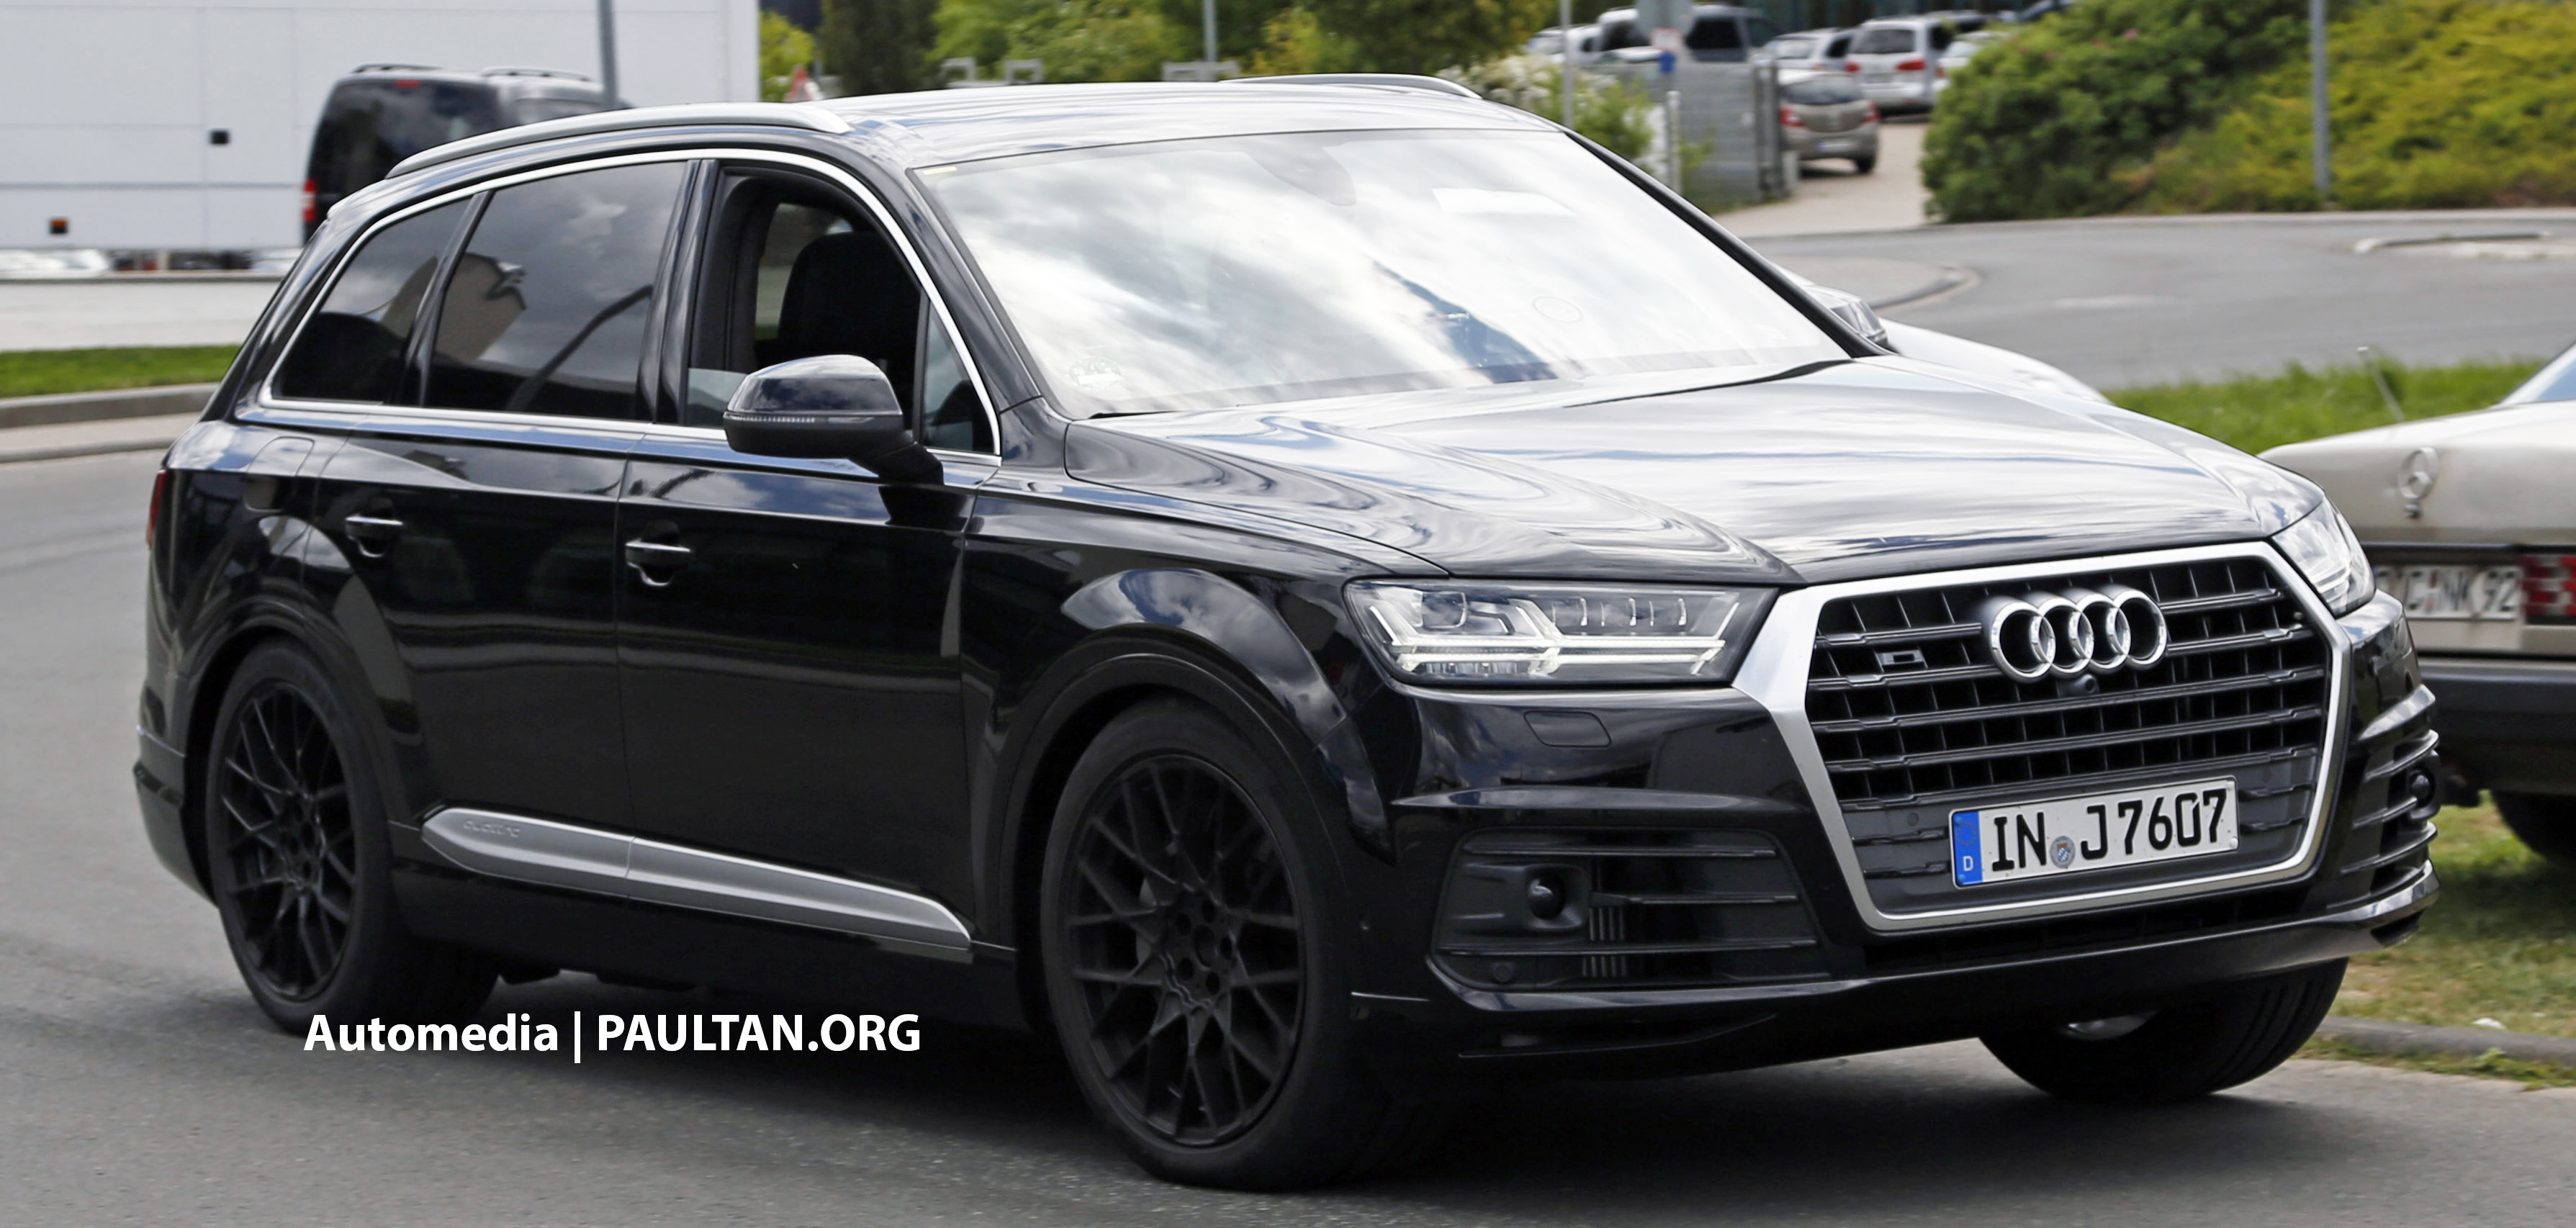 Spyshots Audi Sq7 Seen Again Without Camouflage Image 341697